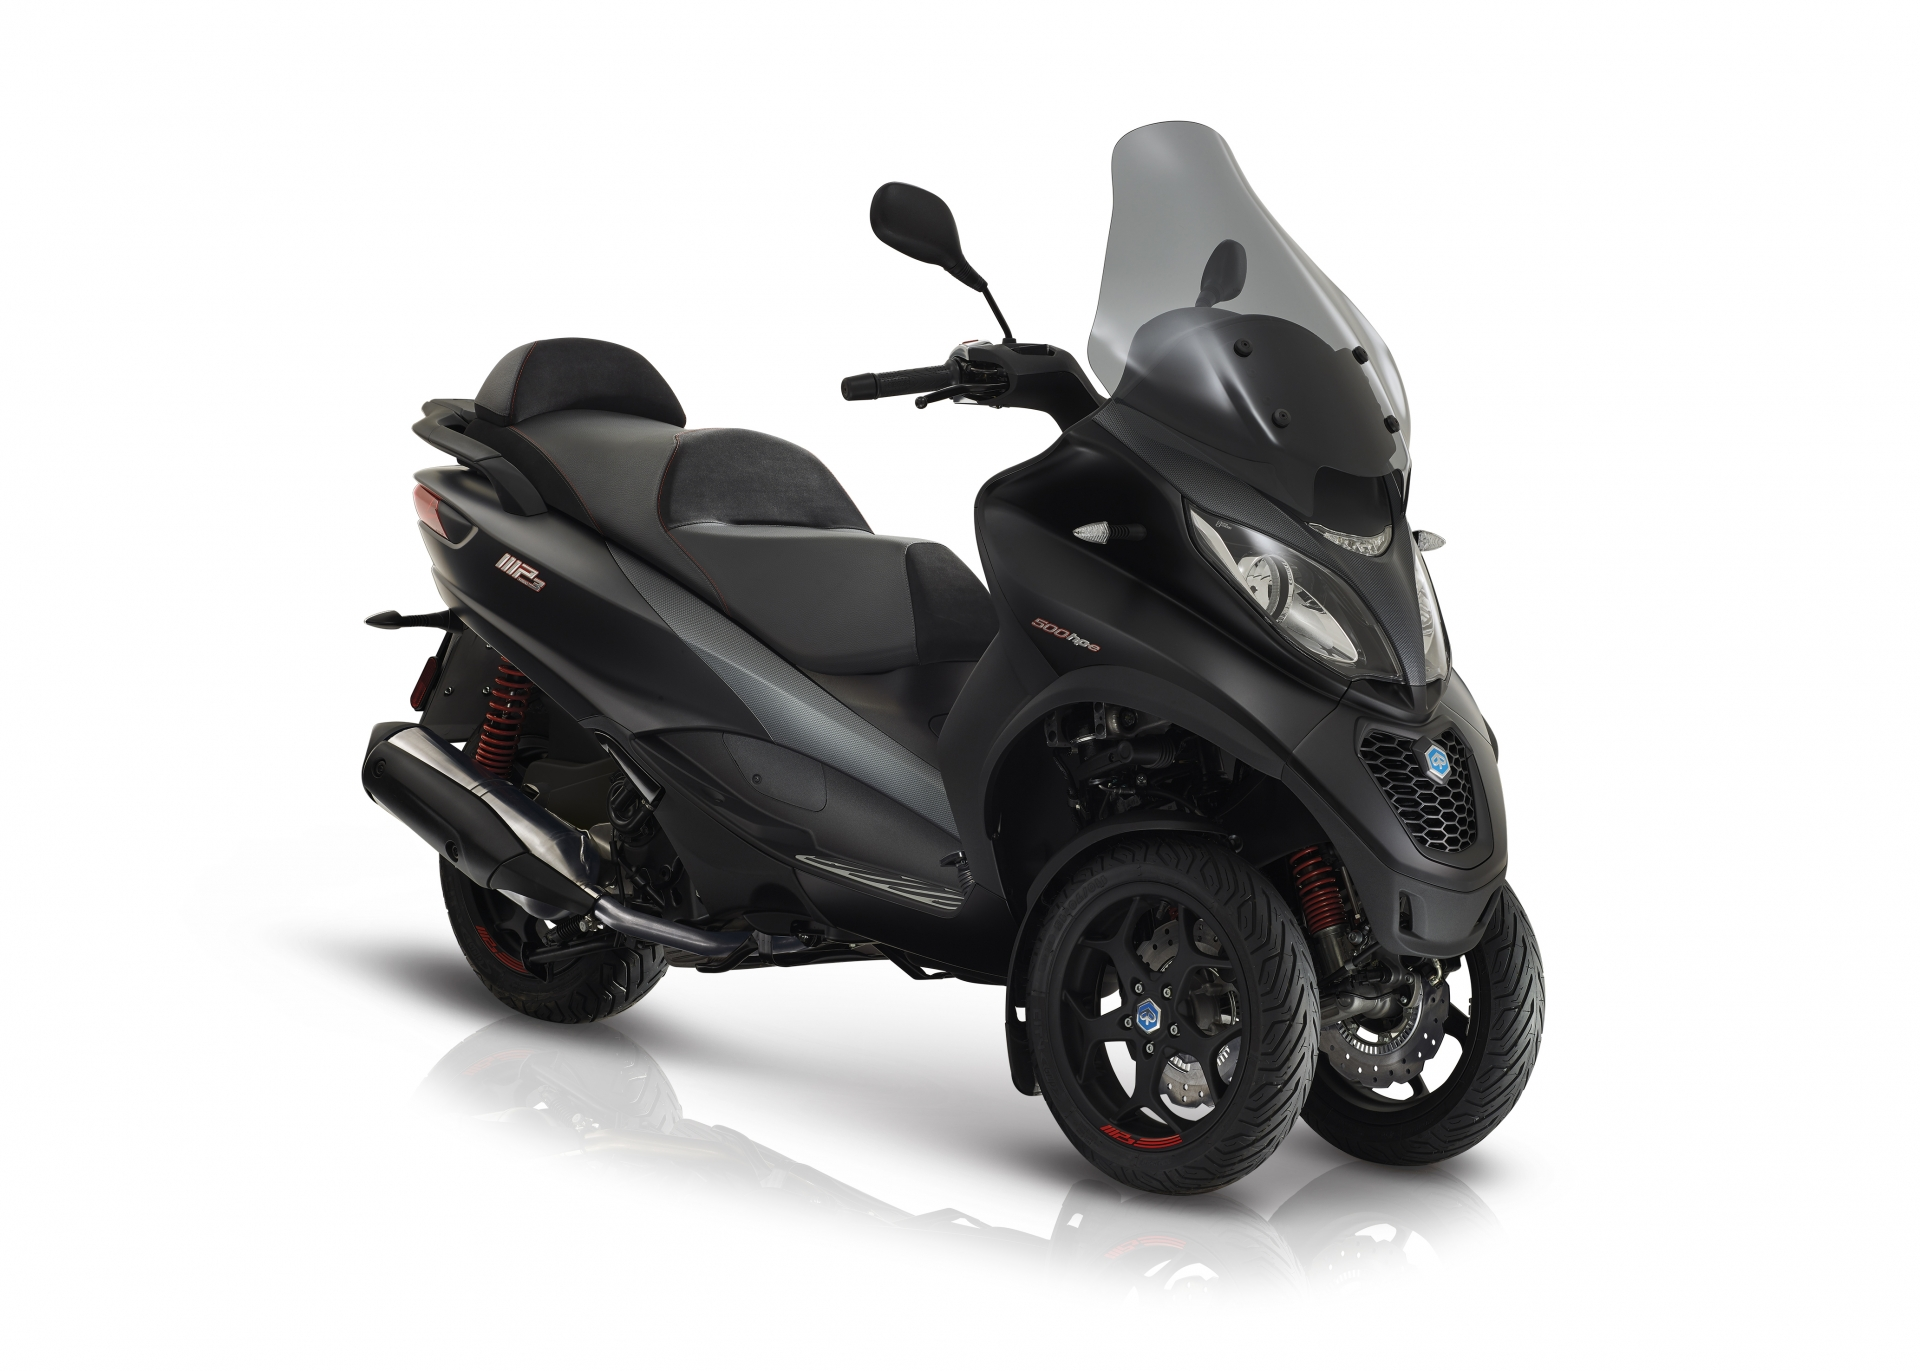 piaggio mp3 hpe sport business 500 350 motor scooter nieuw led. Black Bedroom Furniture Sets. Home Design Ideas